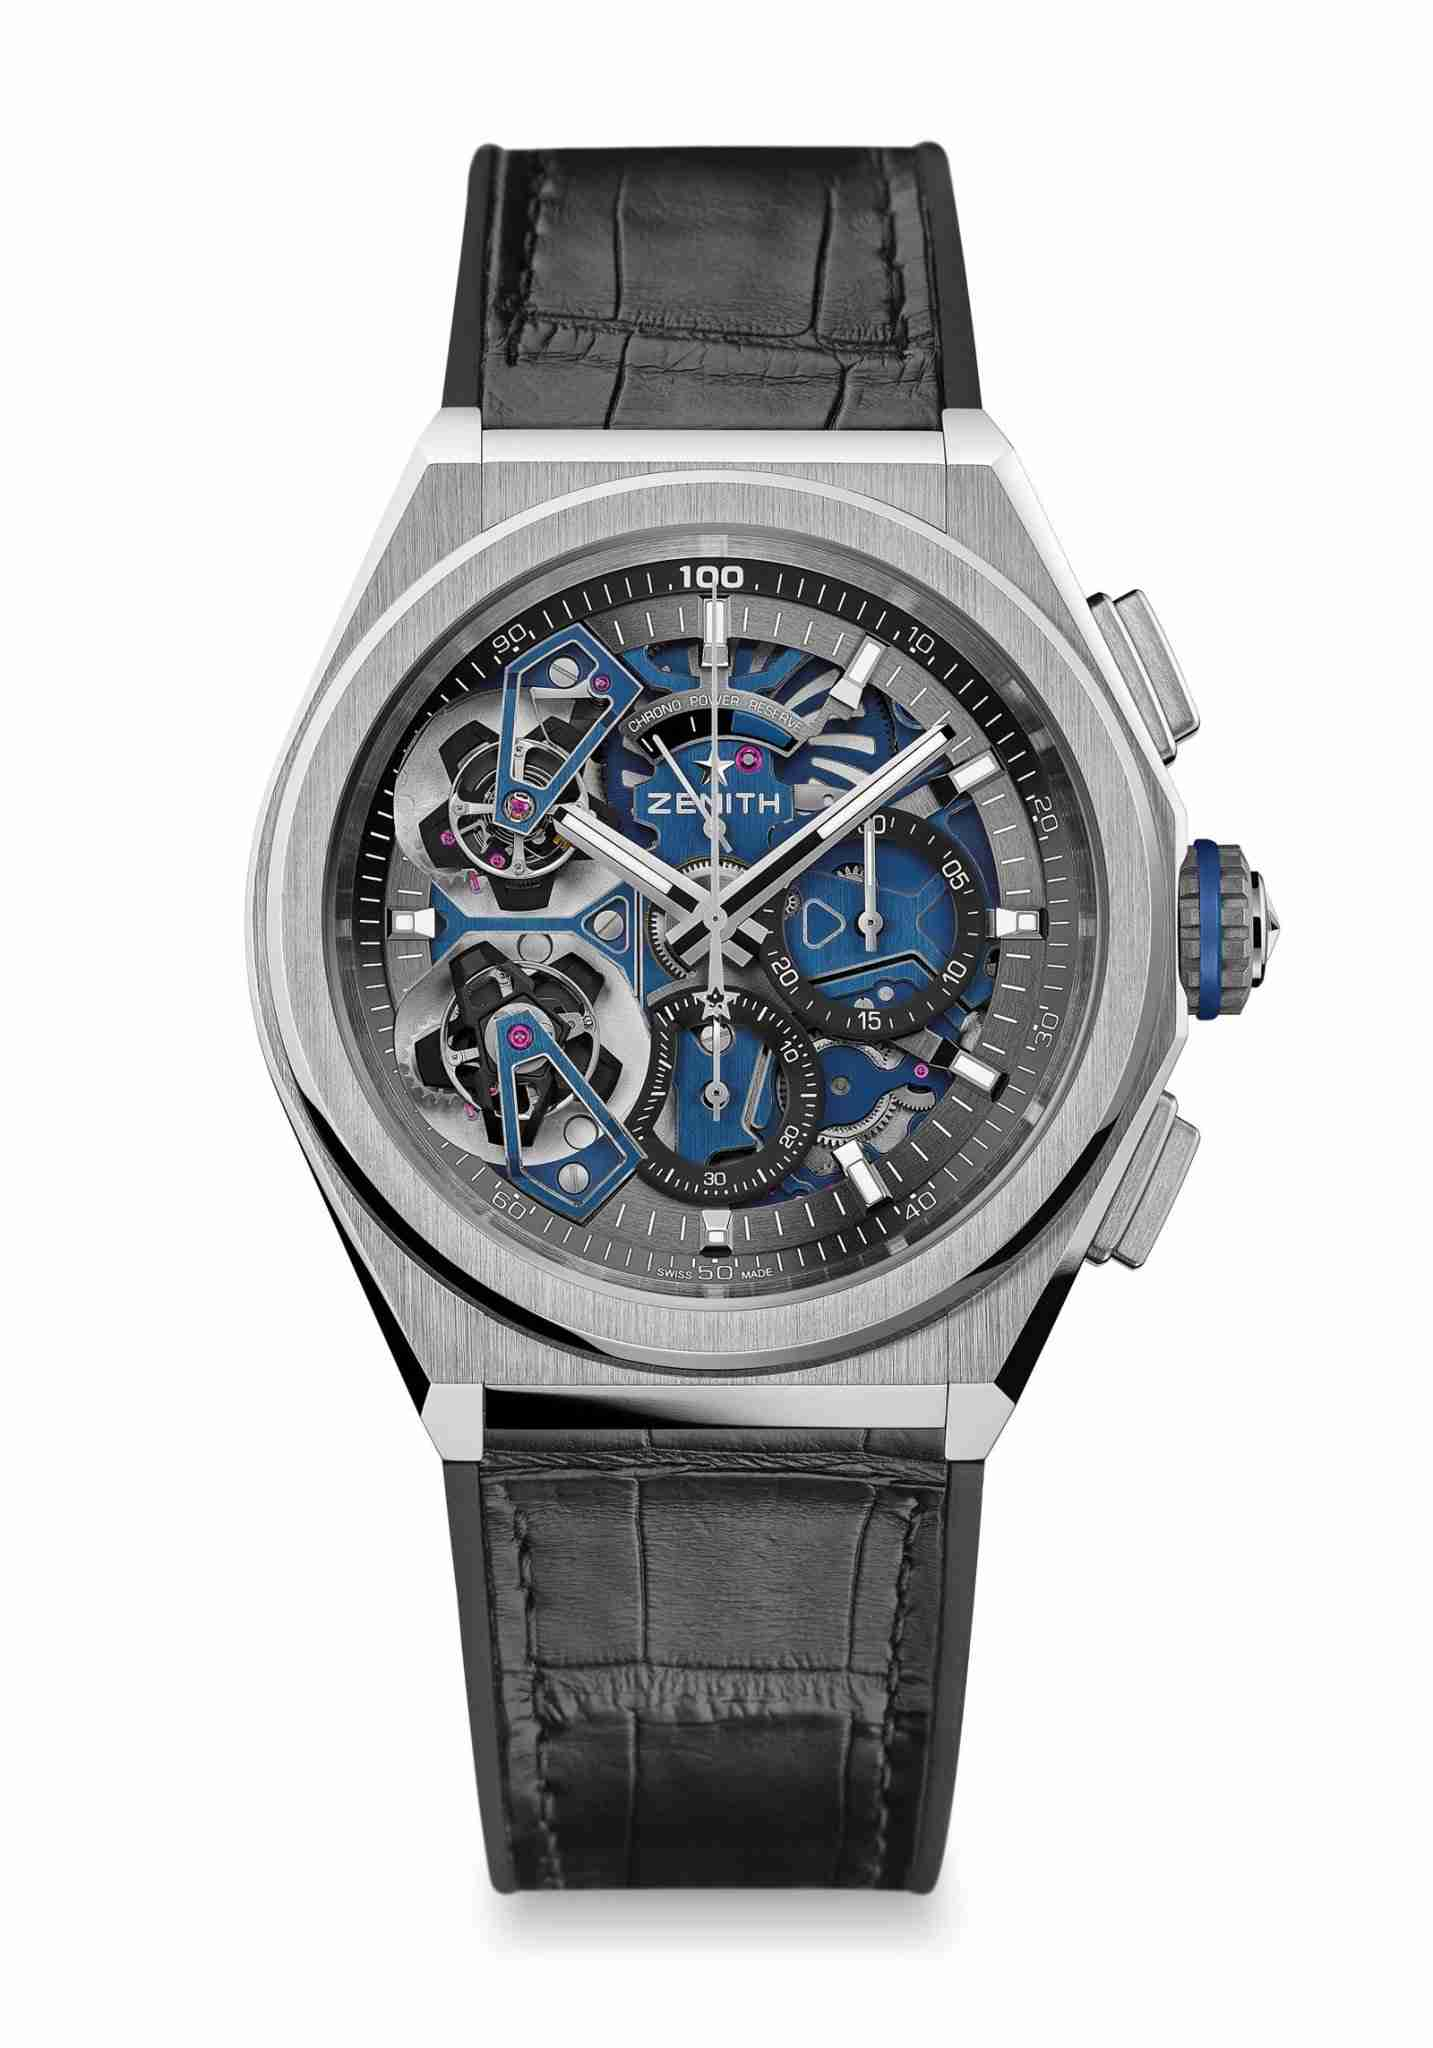 Zenith Defy El Primero Double Tourbillon Automatic Black Carbon And Platinum Replica Watches For 2019 Good Friday 1.jpg